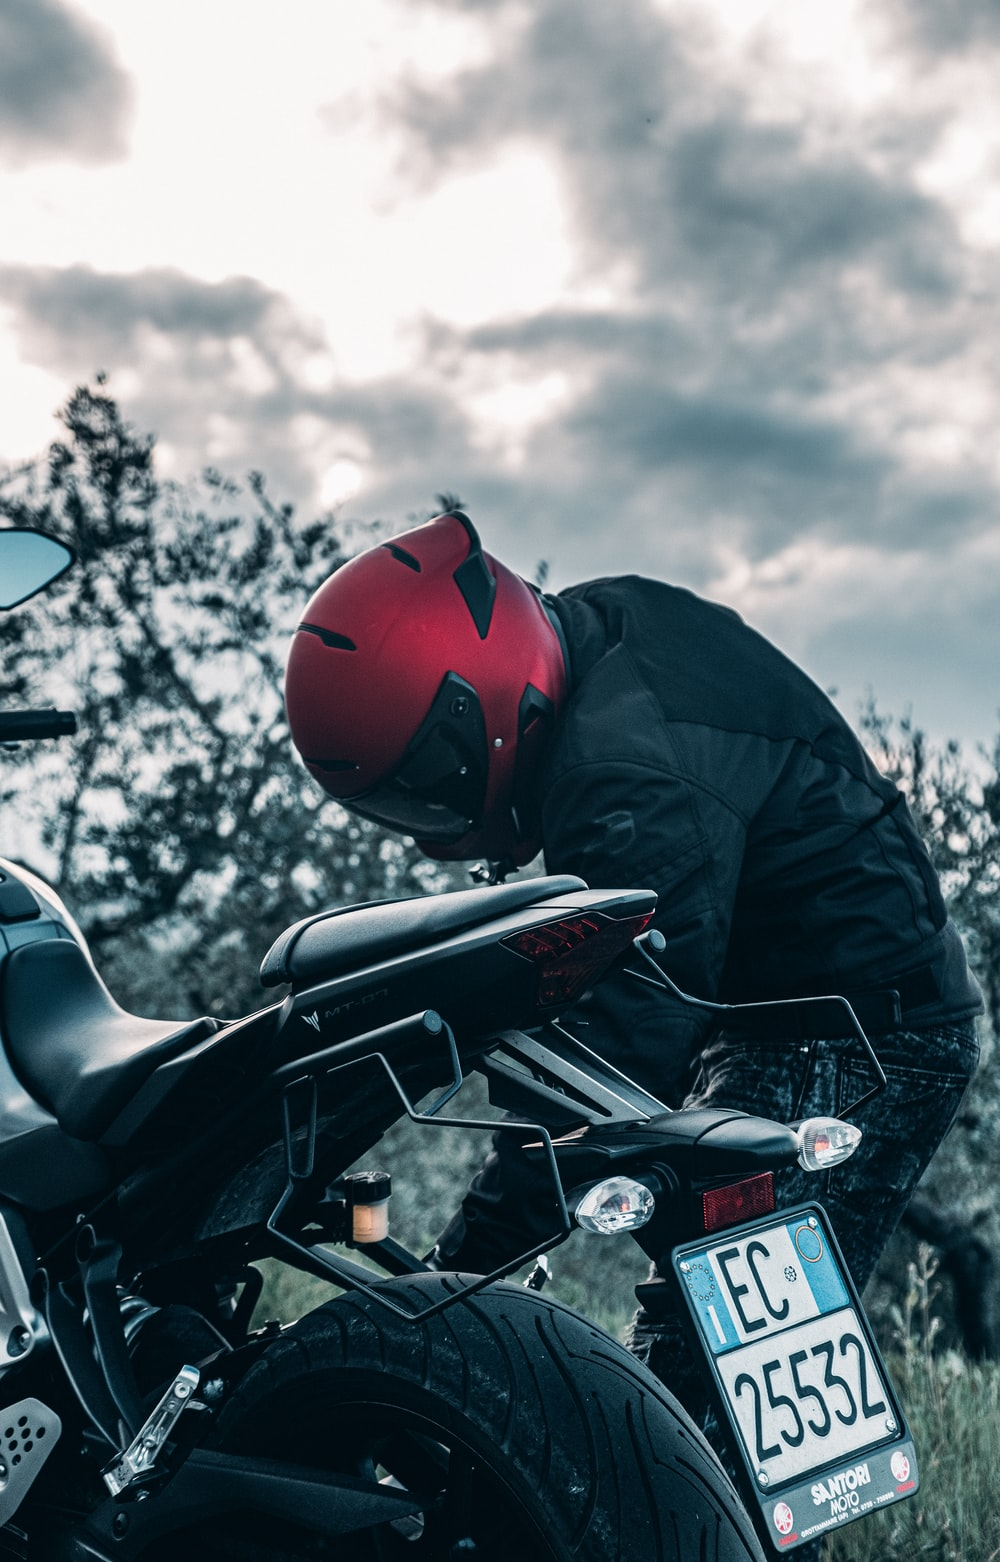 man in black jacket and red helmet riding motorcycle